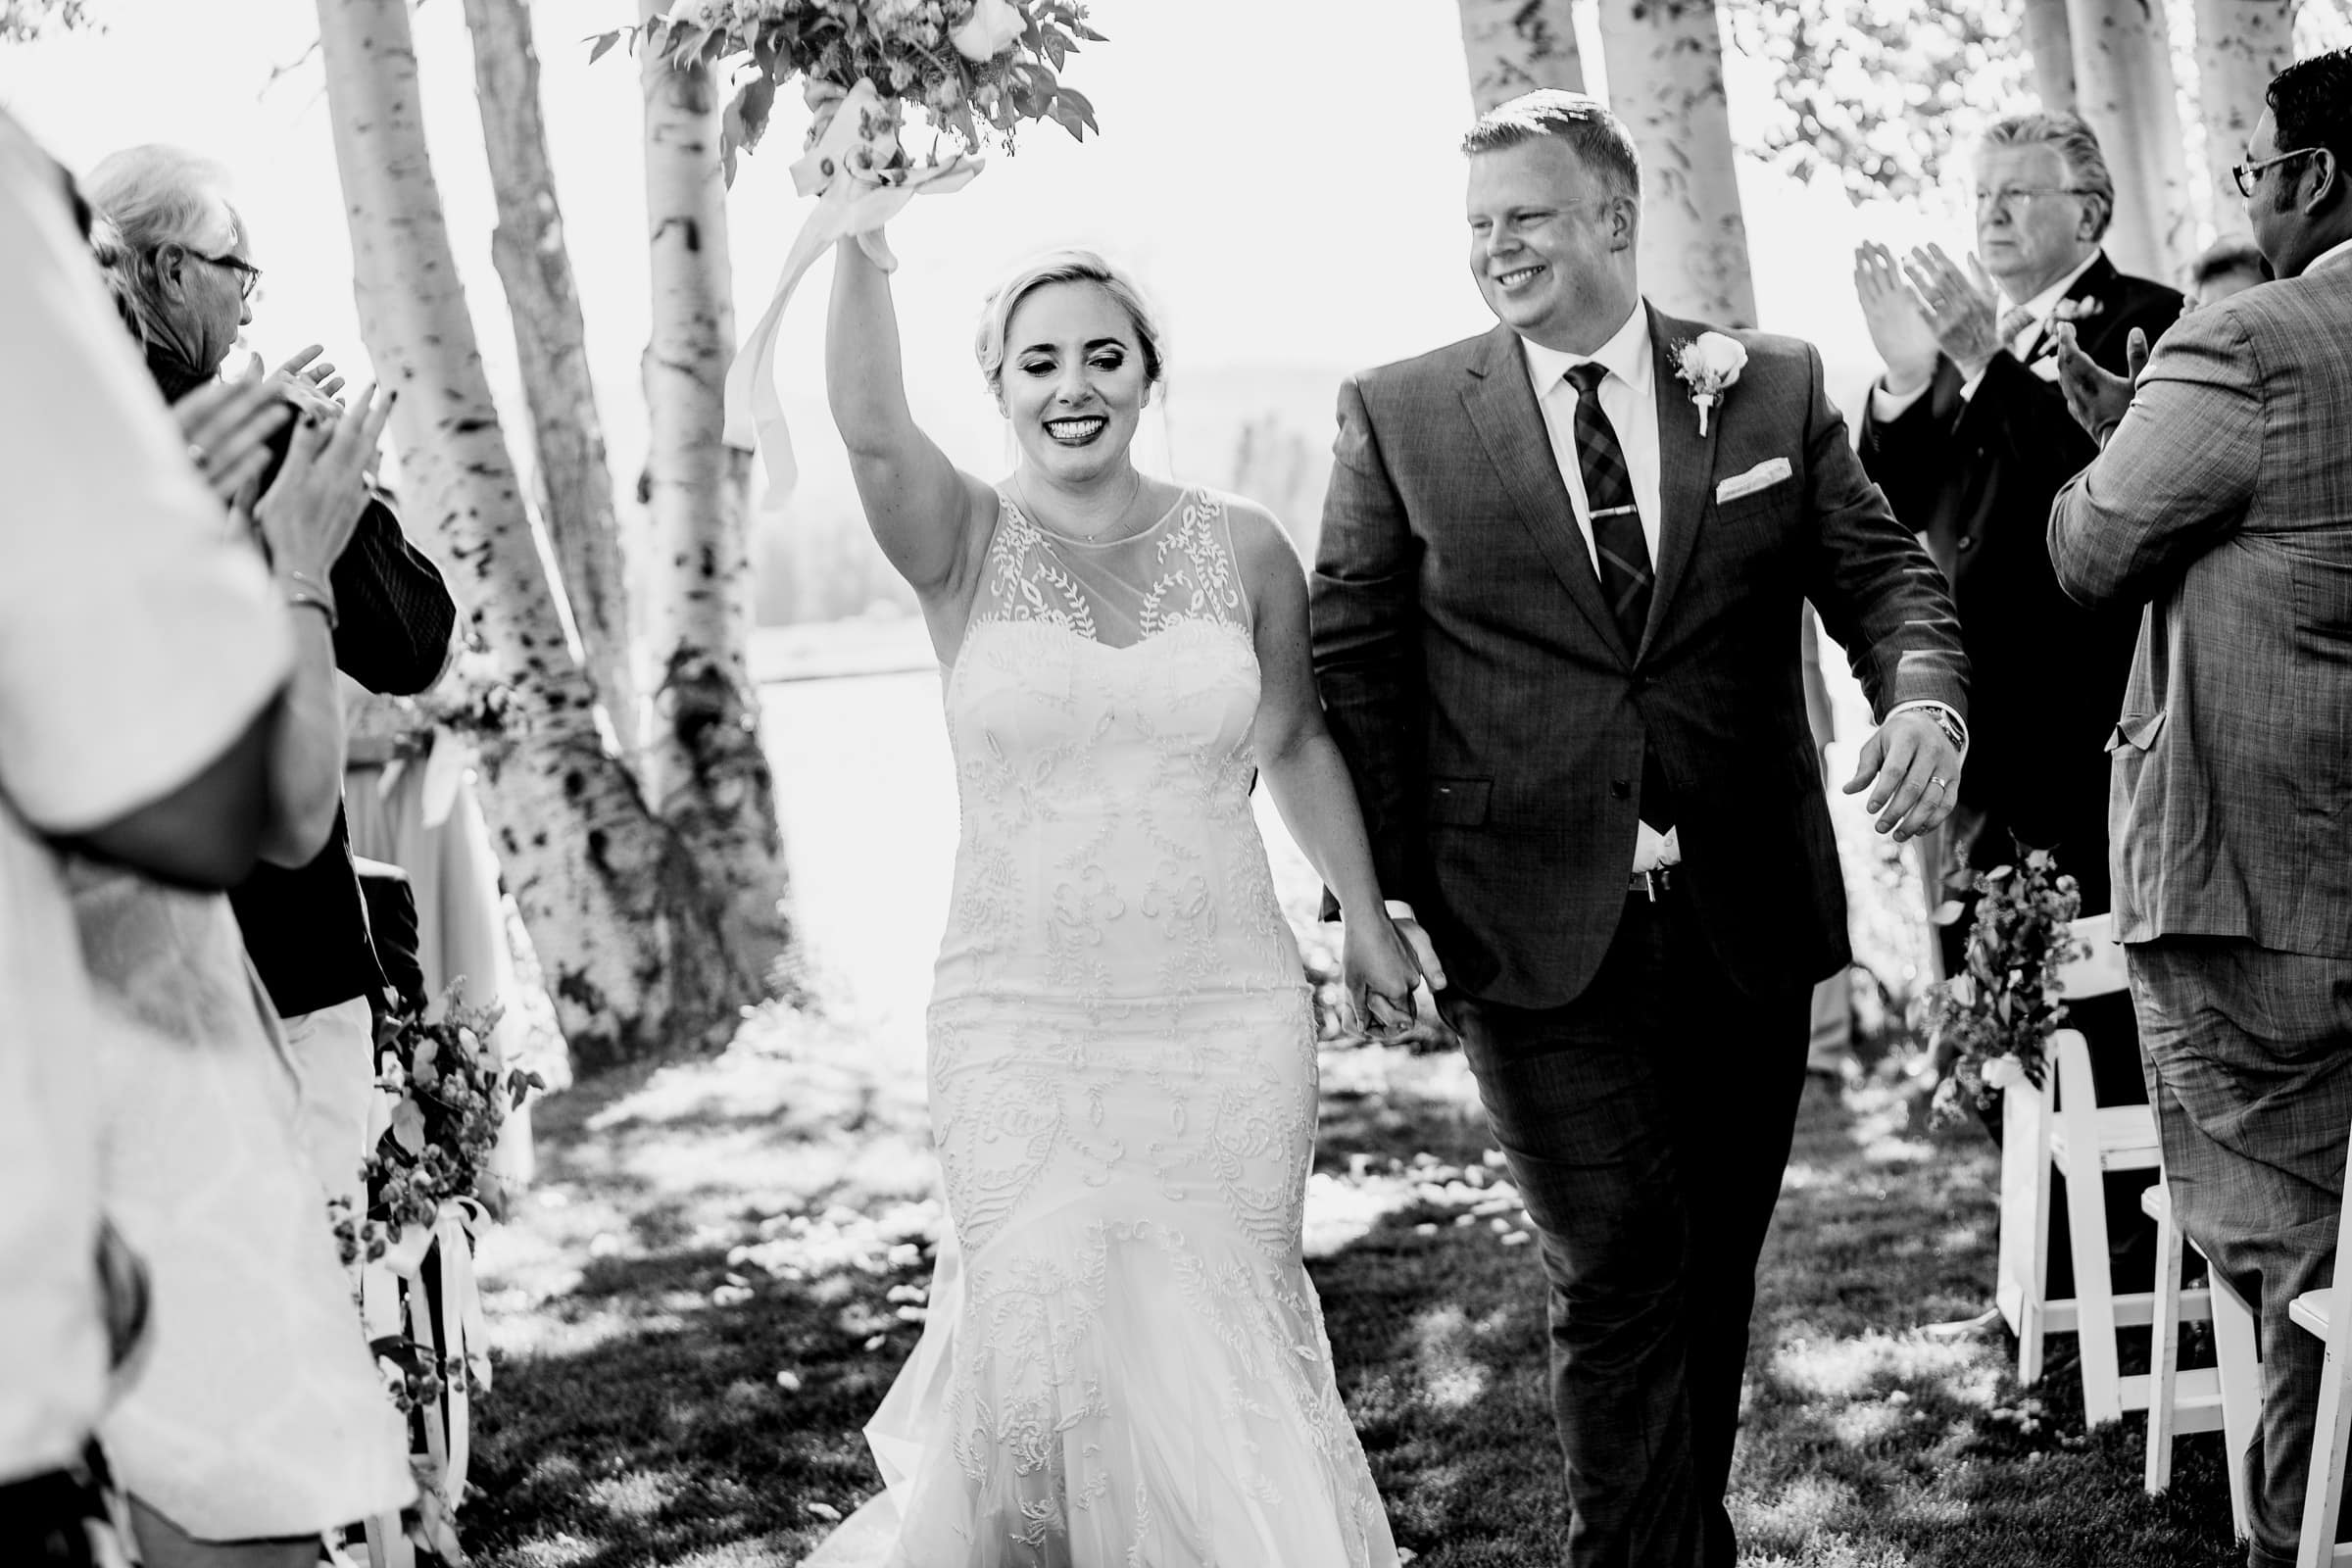 Emotional bride and groom while exiting their Black Butte Ranch wedding ceremony in Central Oregon